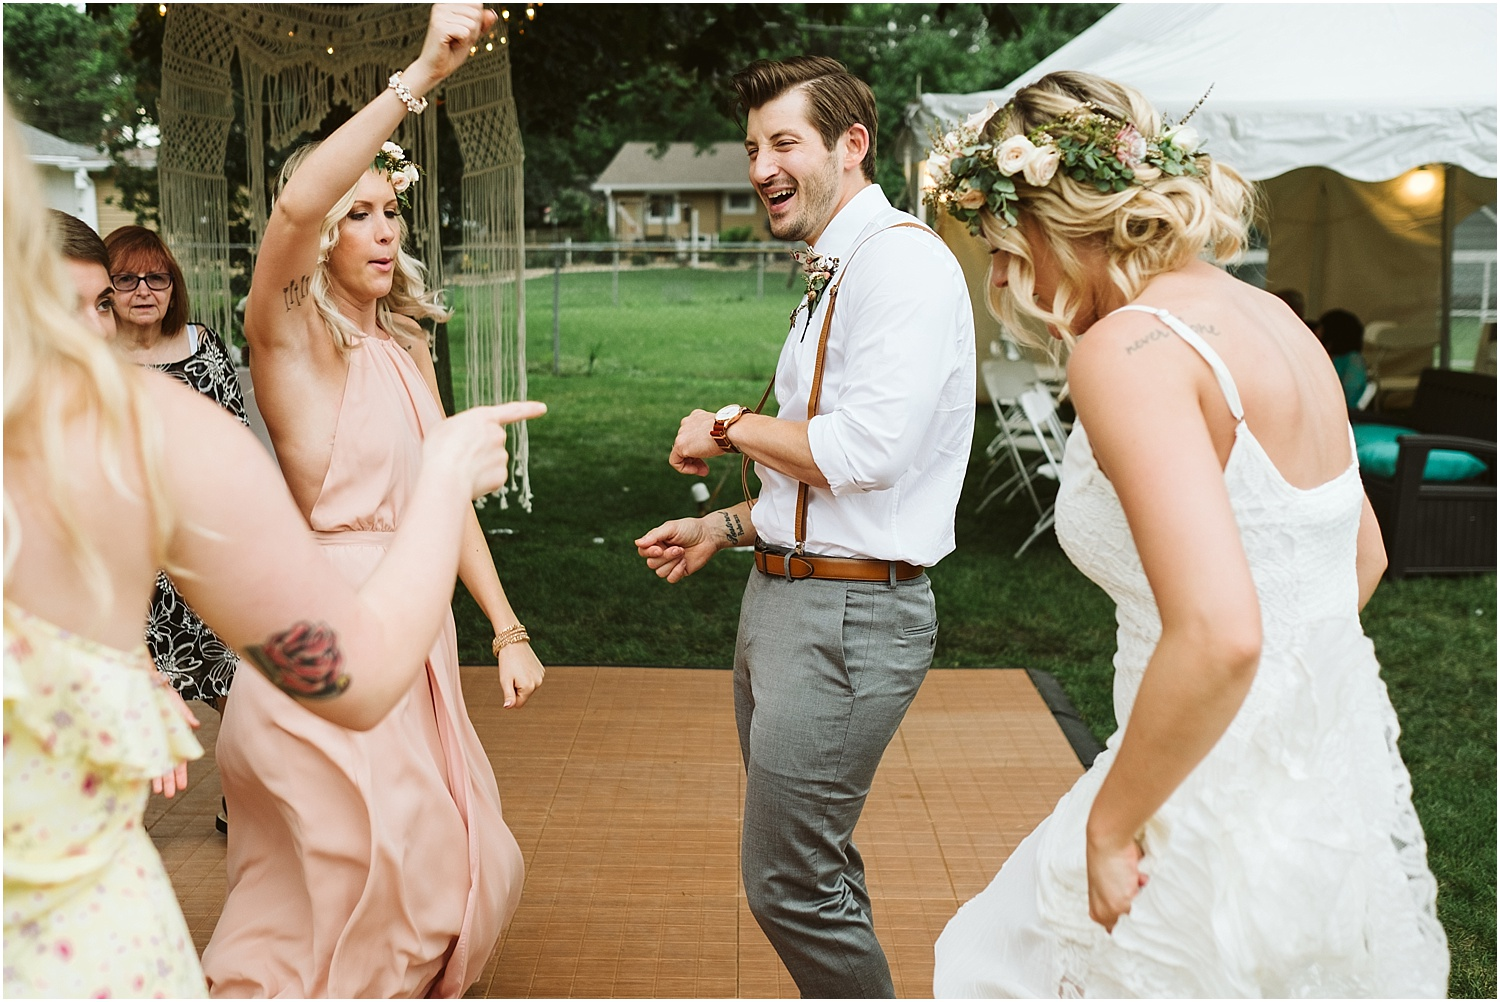 j-b-joyful-happy-smile-dancing-backyard-diy-boho-chic-wedding_0066.jpg